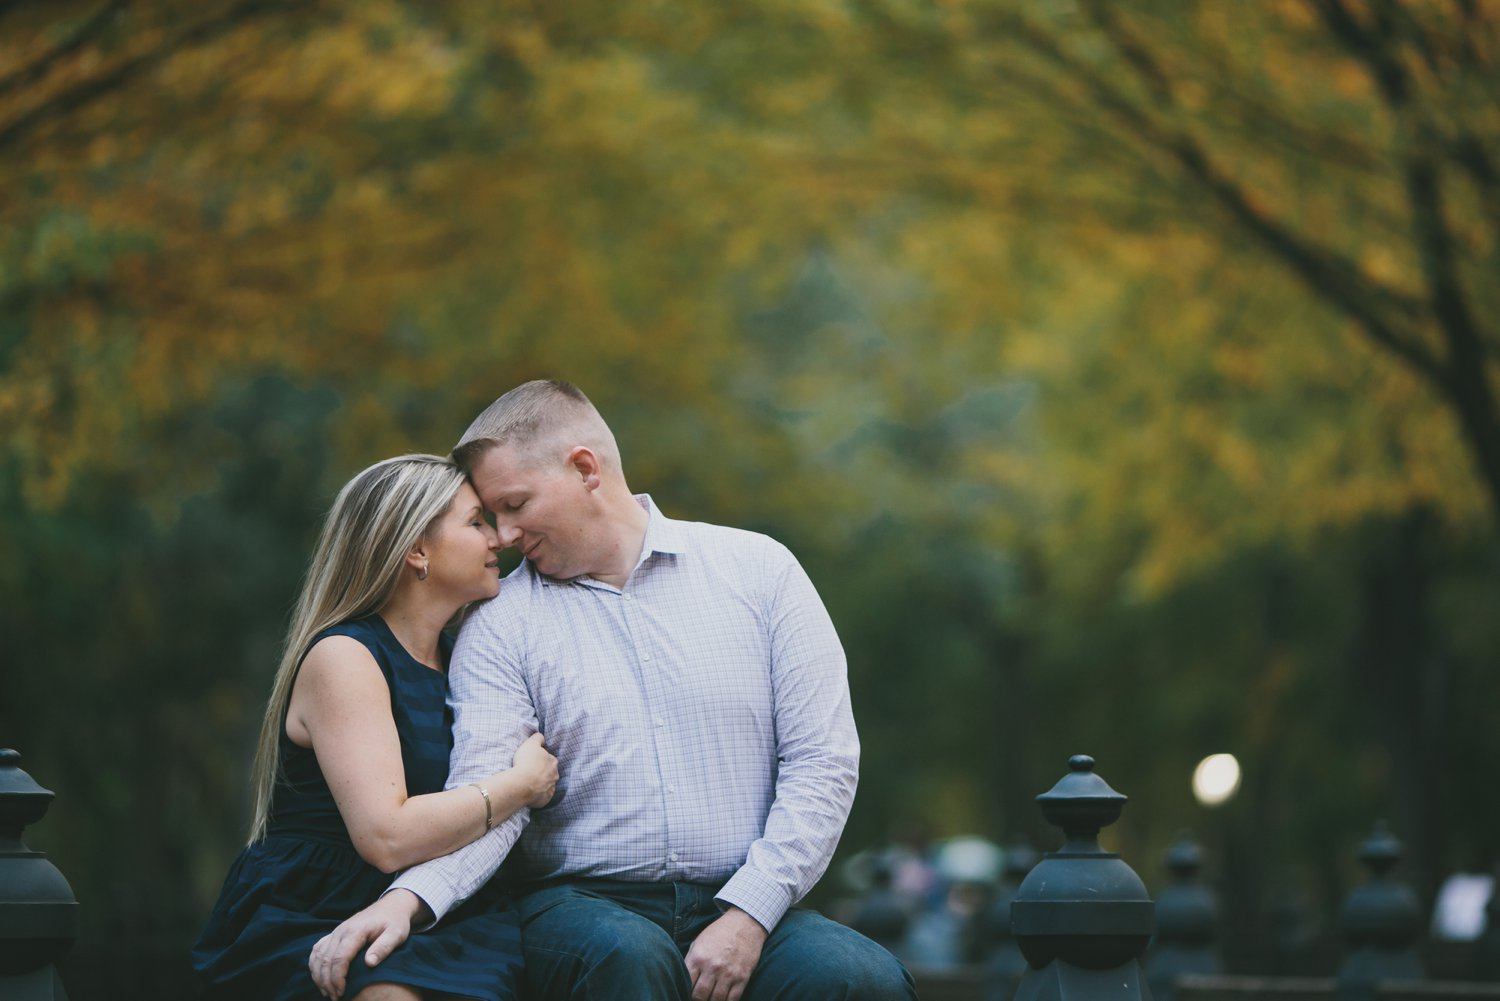 36NYC-NJ-ENGAGEMENT-PHOTOGRAPHY-BY-INTOTHESTORY-MOO-JAE.JPG